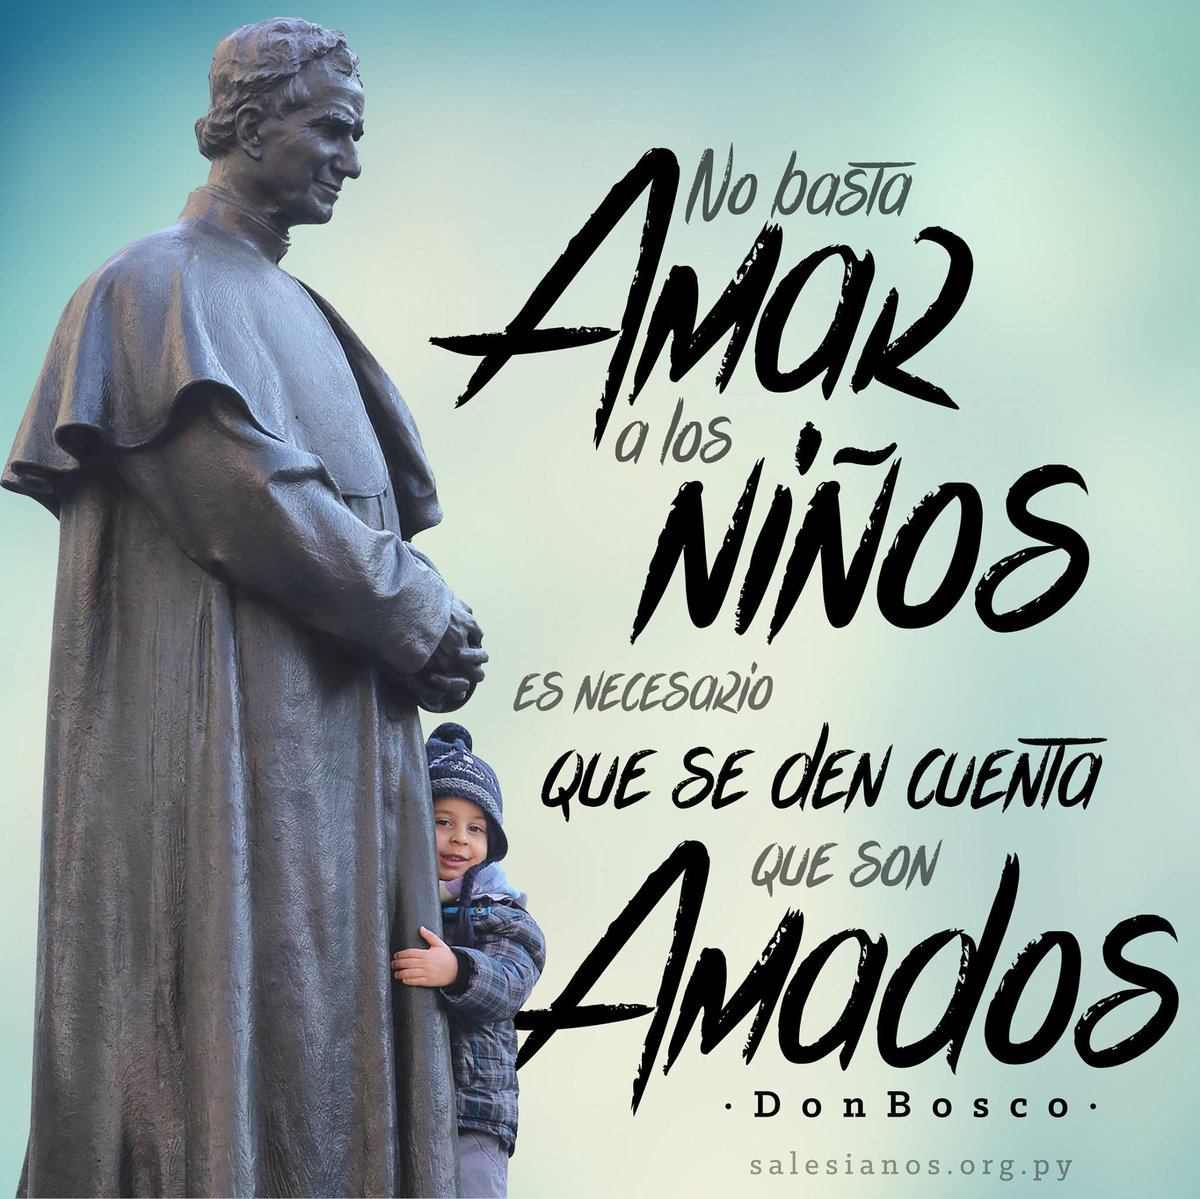 Frases De Don Bosco On Twitter No Basta Amar A Los Niños